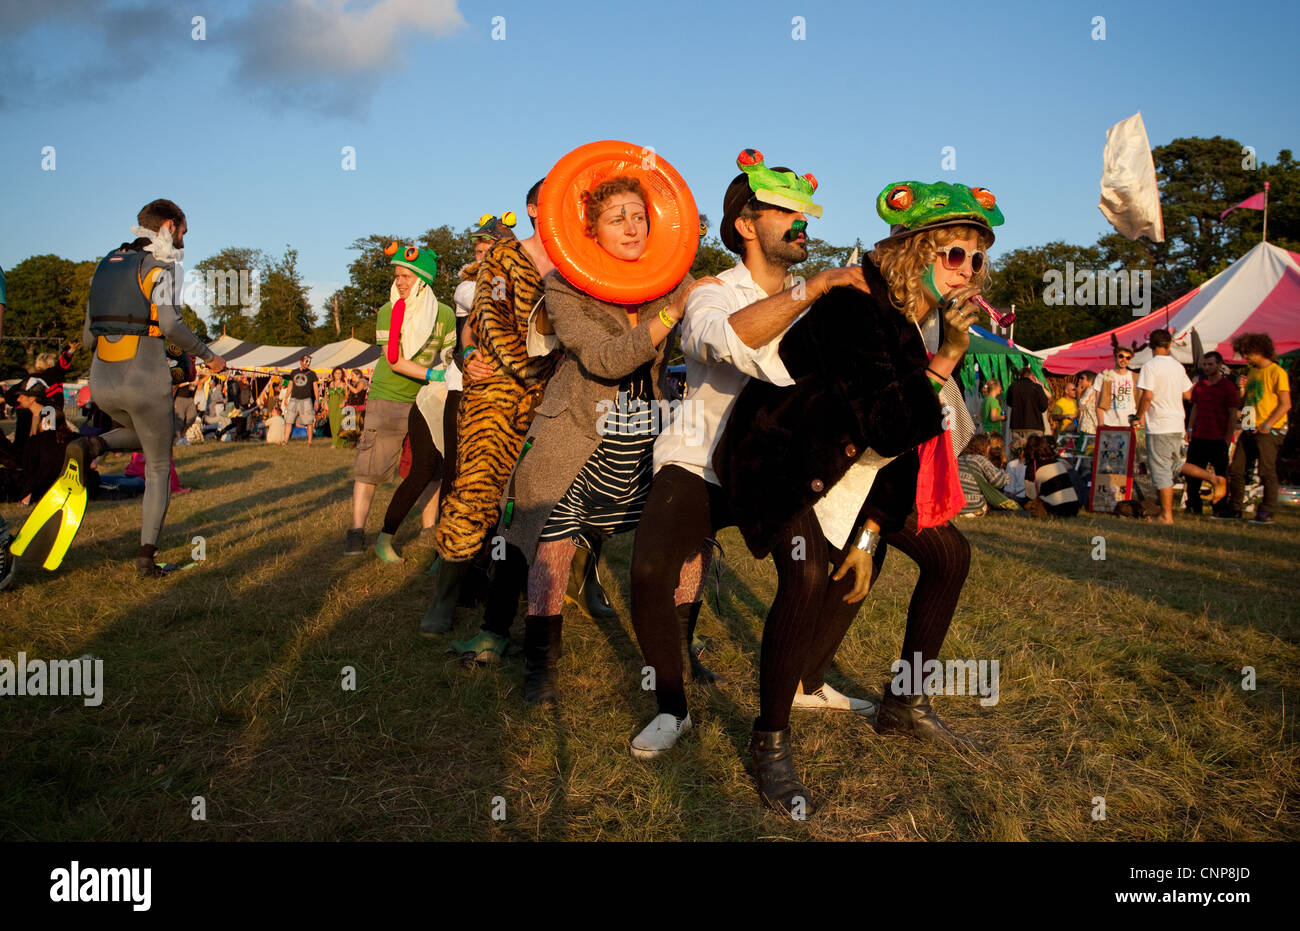 Performers at Playgroup Festival, listed as one of the UK's top ten Boutique festivals by Société - Stock Image